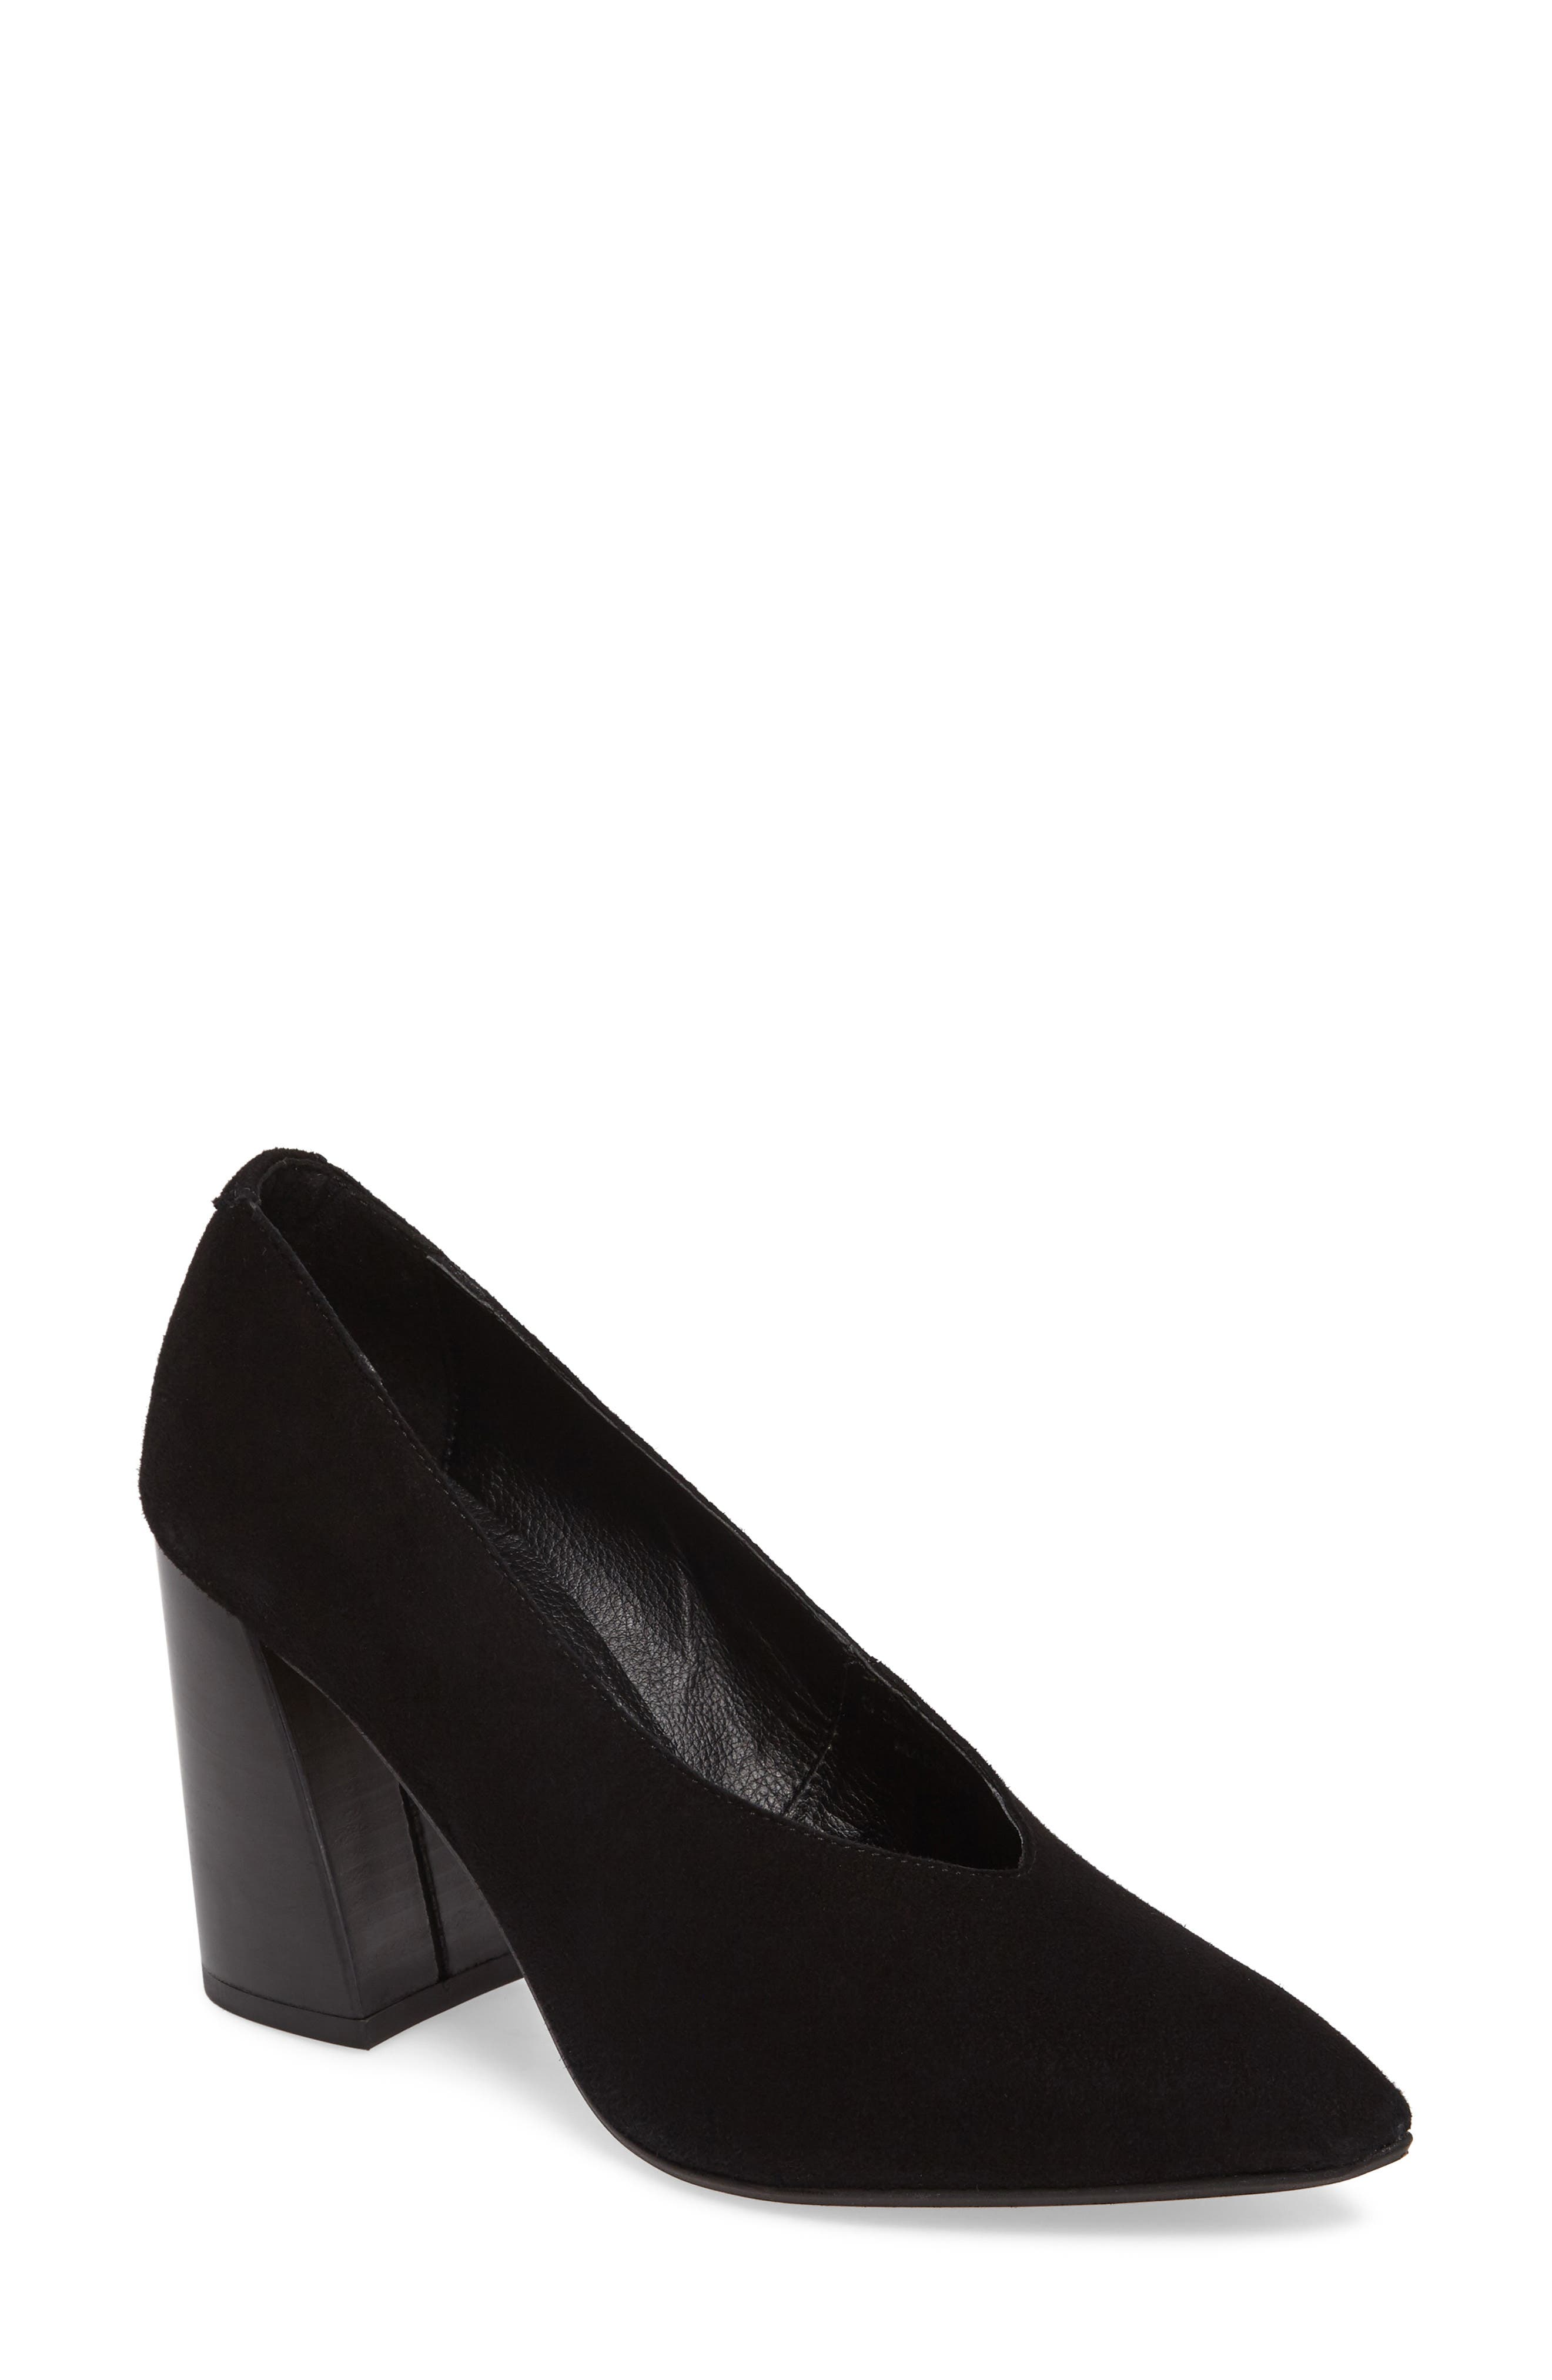 Gina V Cut Pump,                         Main,                         color,